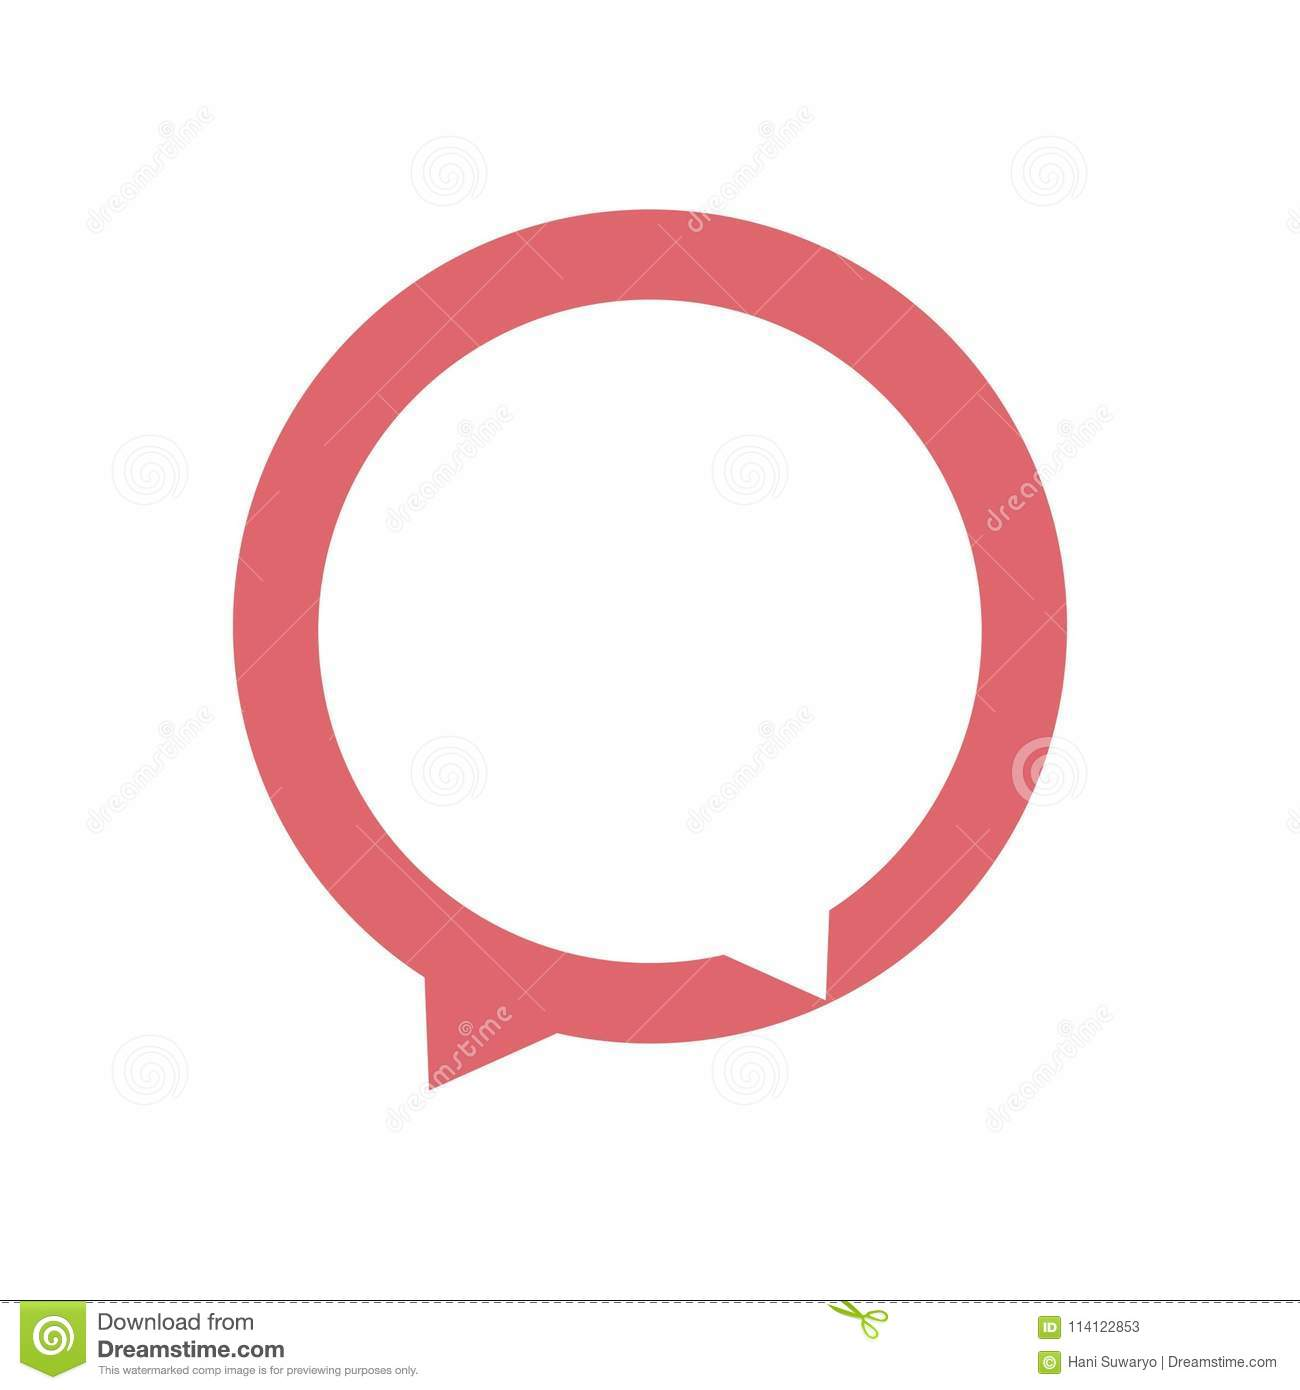 Dialogue icon. Chat vector logo concept illustration in flat style